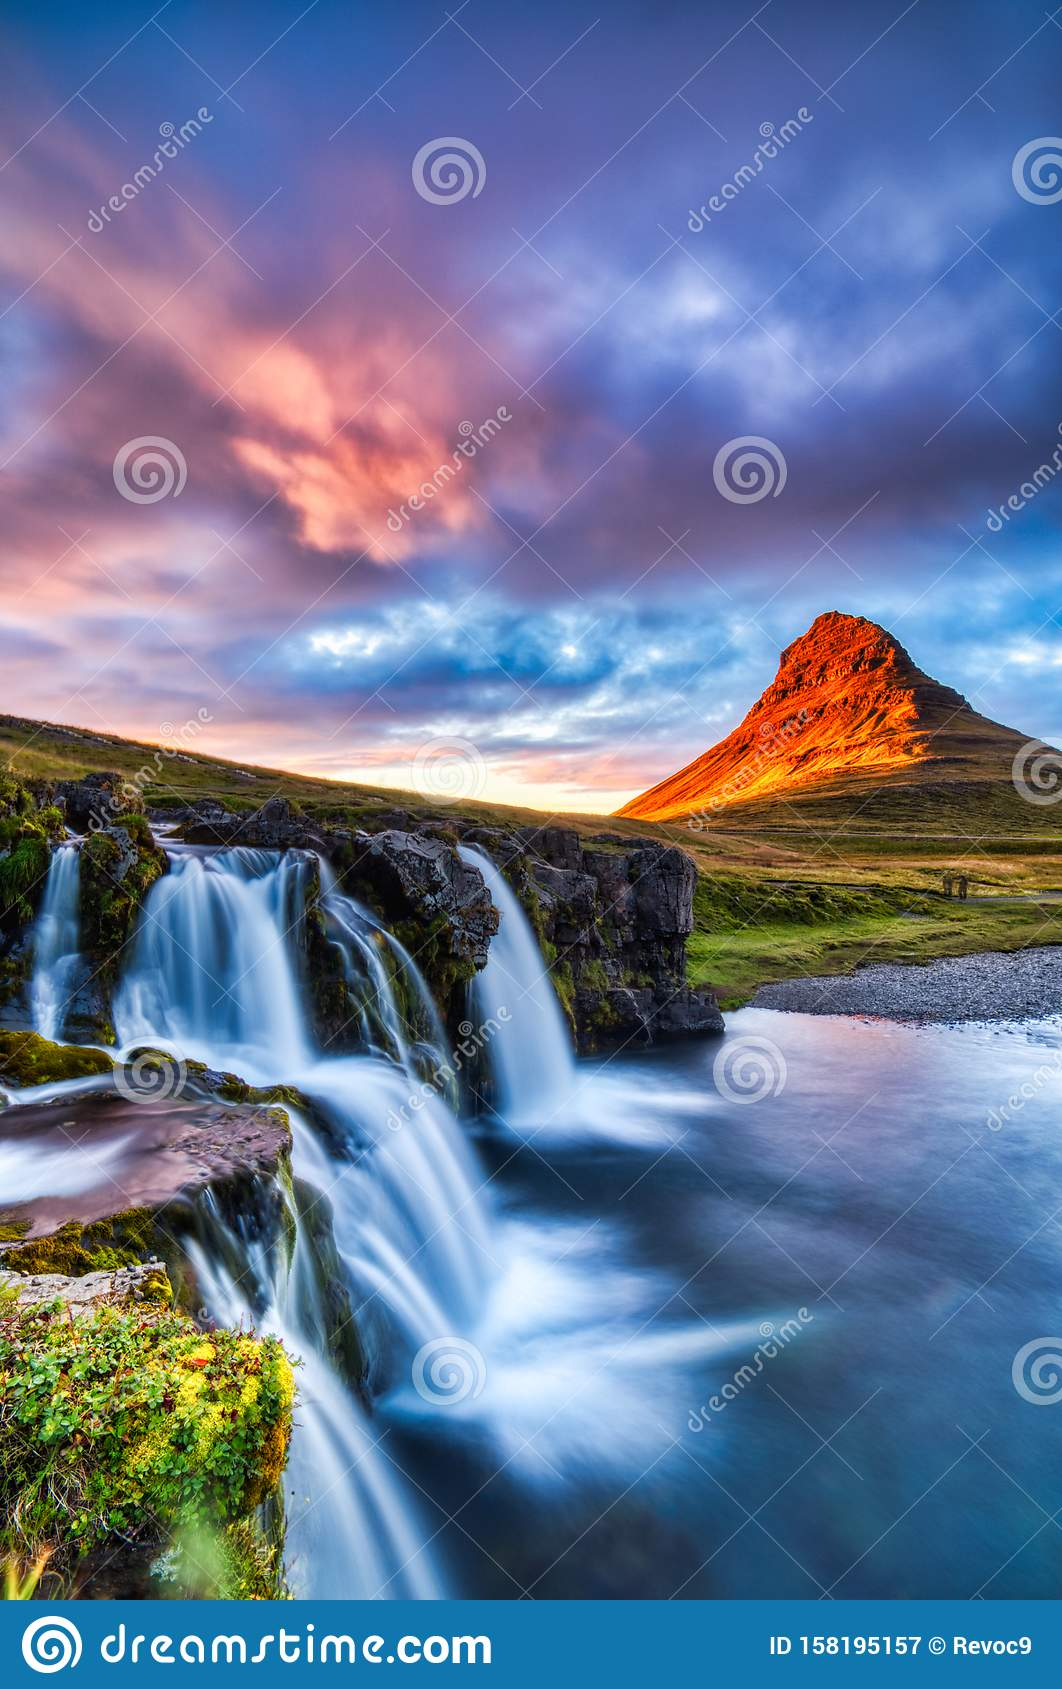 7x10 FT Vinyl Photography Background Backdrops,Waterfall Kirkjufellsfoss in The Mountains Iceland Picture Magical Night Background for Graduation Prom Dance Decor Photo Booth Studio Prop Banner